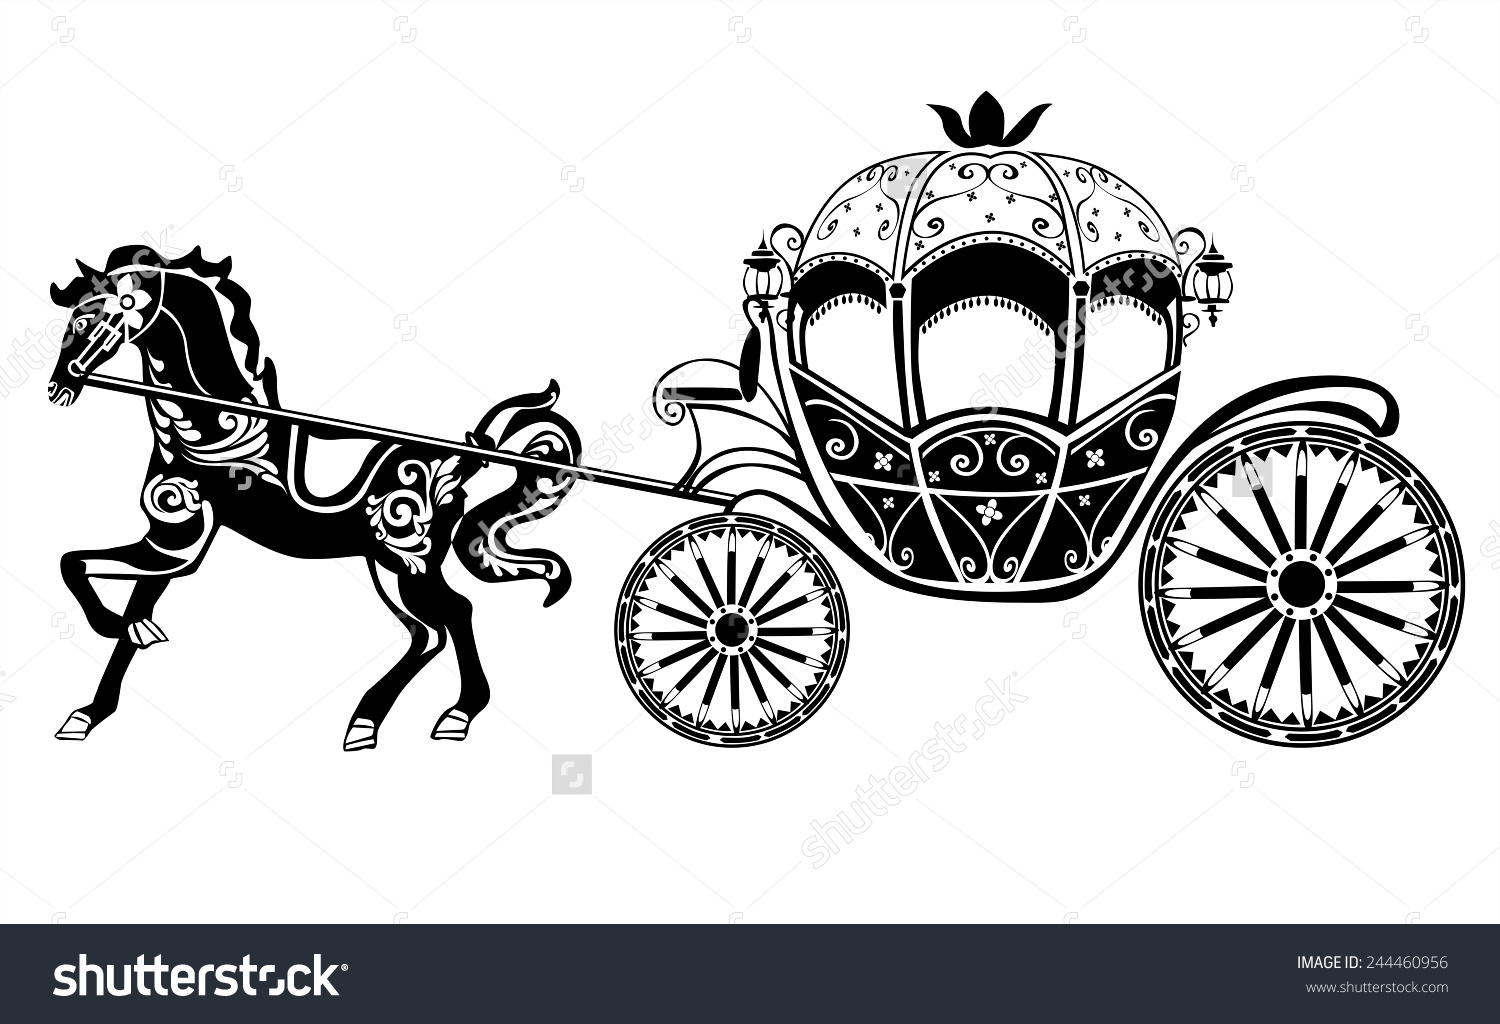 Carriage clipart Carriage a horse Clipart And